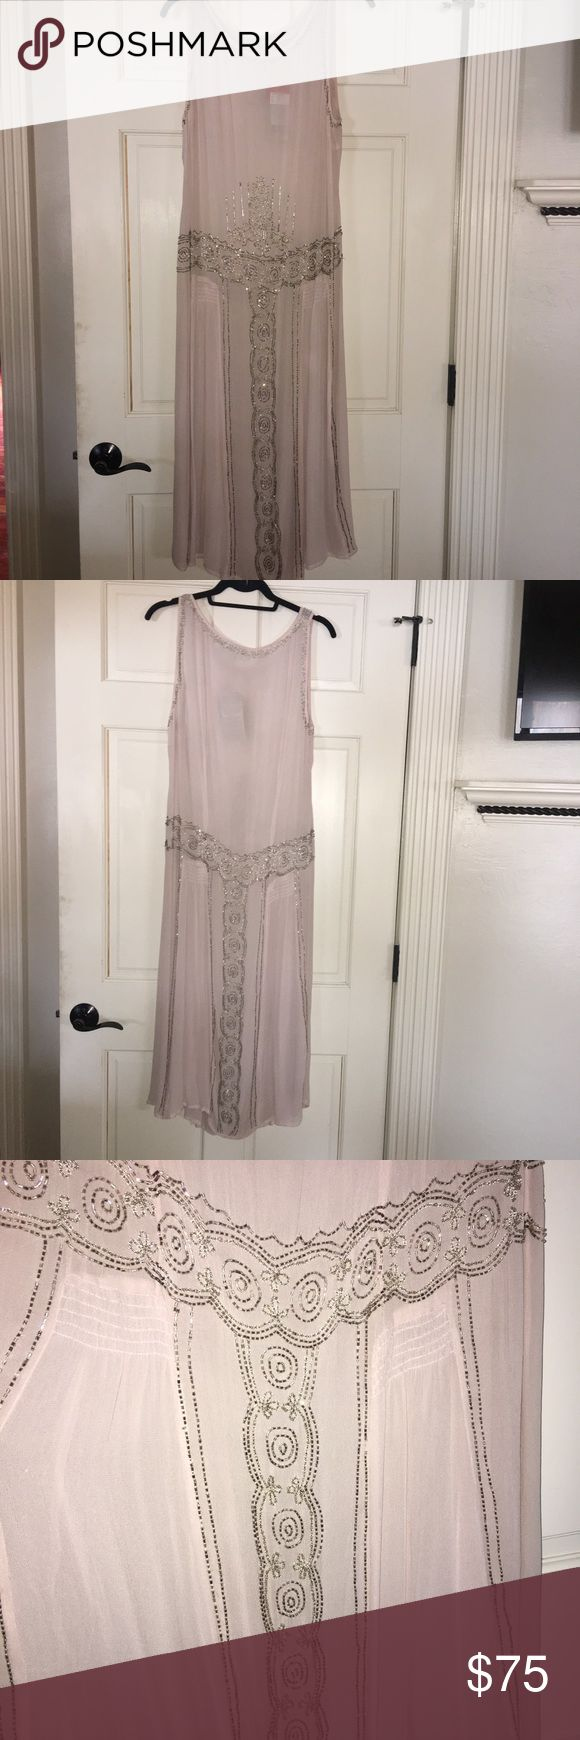 NWT Antique Georgette for Noa Noa Dress New With Tags Antique Georgette for Noa Noa light pink dress with silver beading. ***This price is firm*** This dress comes with a slip so it's not see-through. Never worn. I bought this dress at a boutique in Rome, Italy. Noa Noa is a feminine Scandinavian clothing brand for women & and kids. Noa Noa Dresses